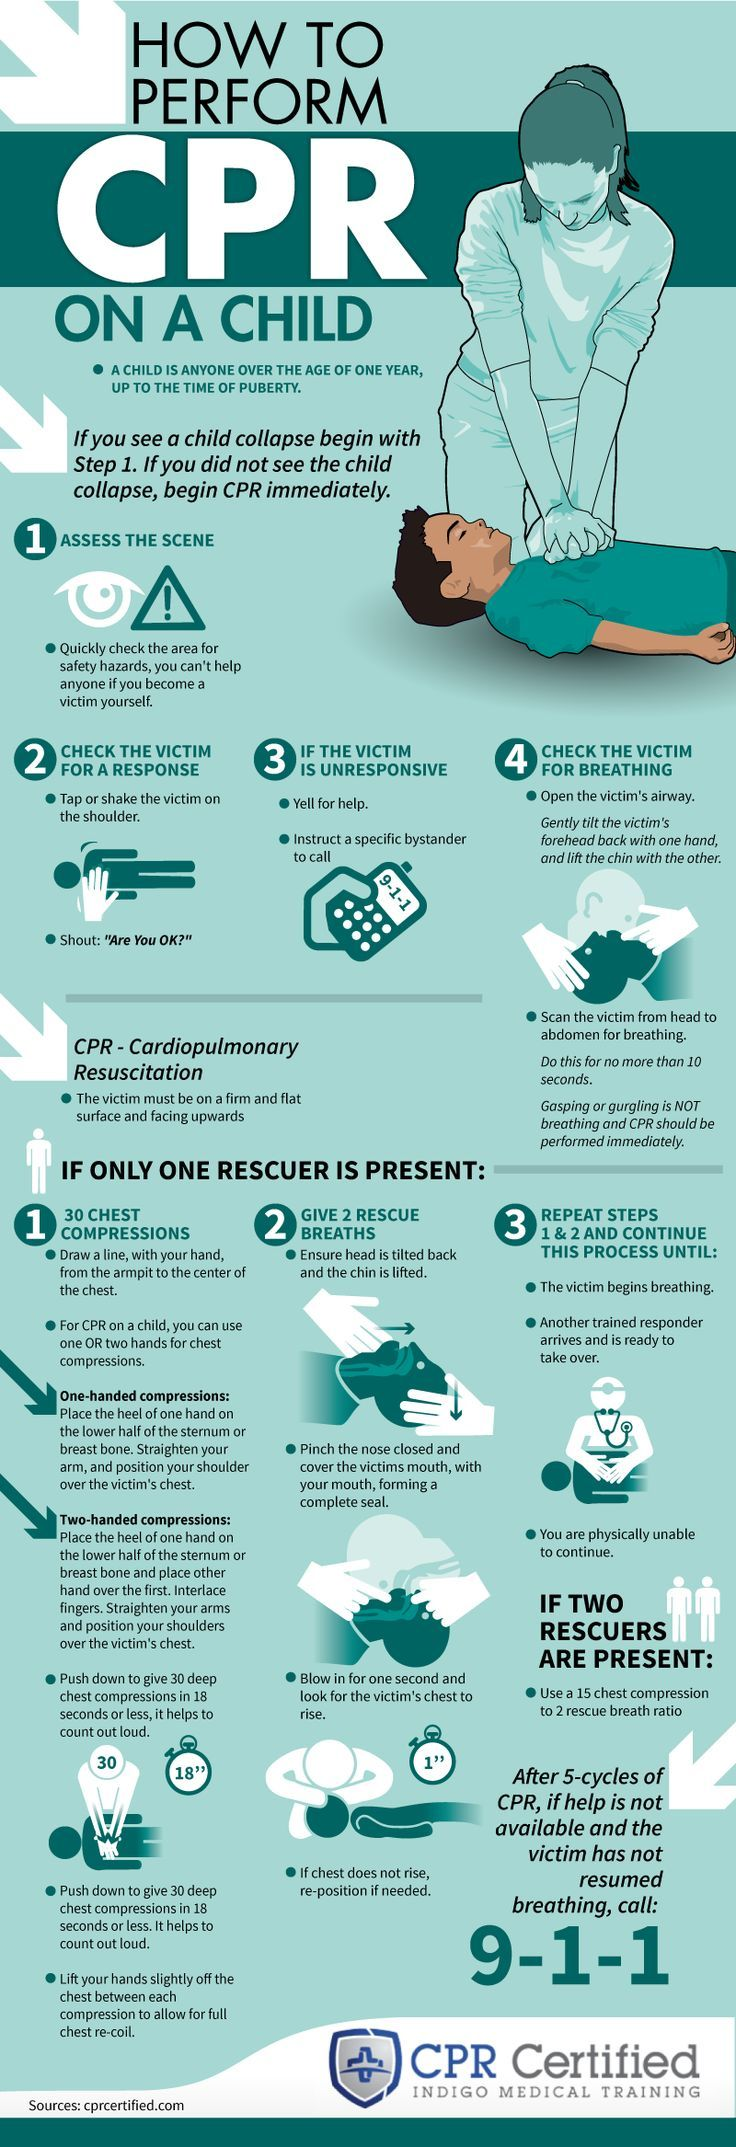 resume Performing Stop Of Activity That Is Not Resumed best 25 how to give cpr ideas on pinterest a child read this now because you never know when youapos